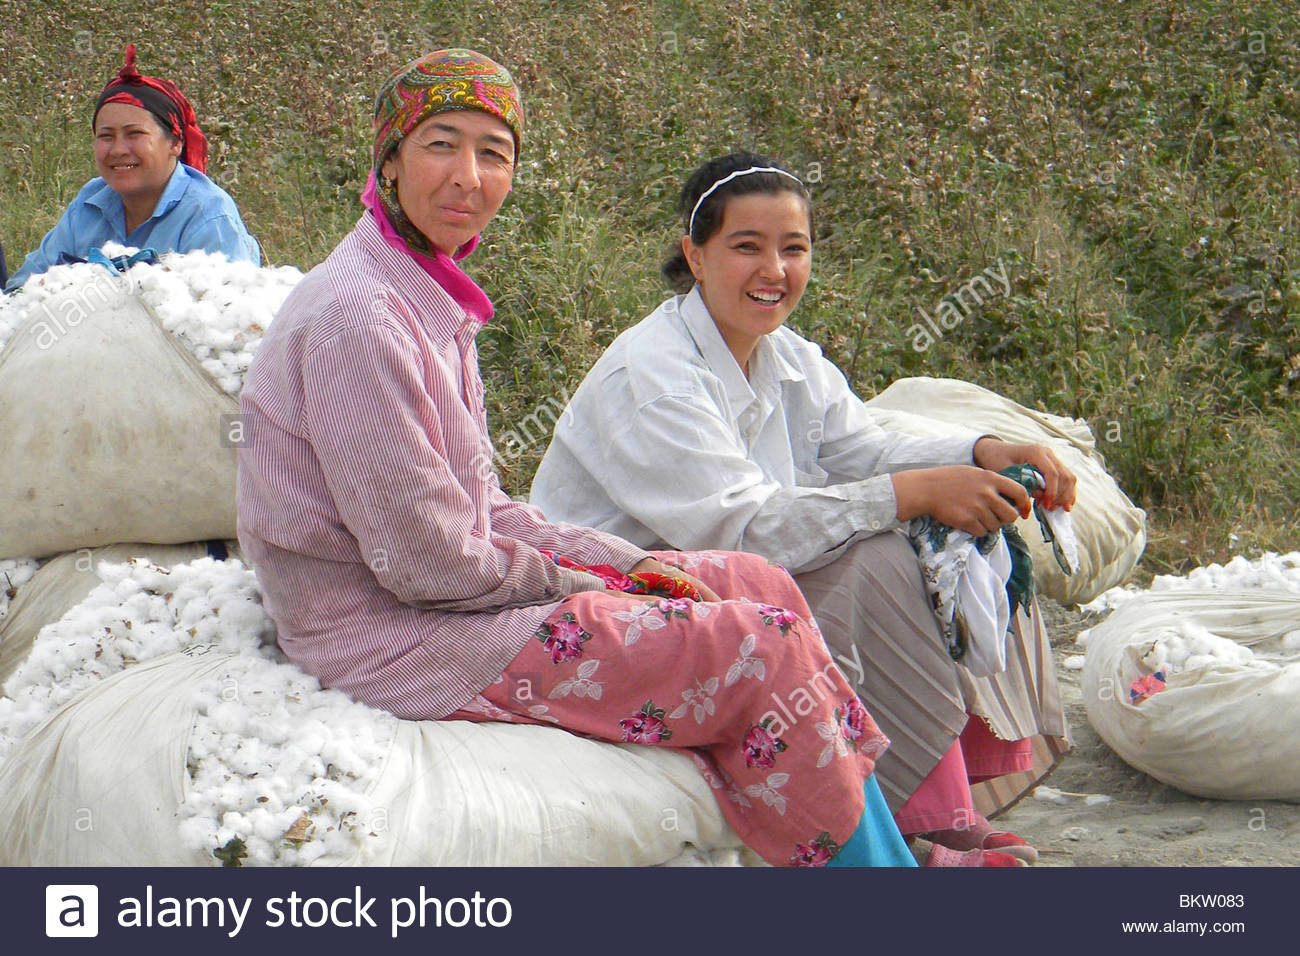 Cotton workers,Uzbekistan Stock Photo